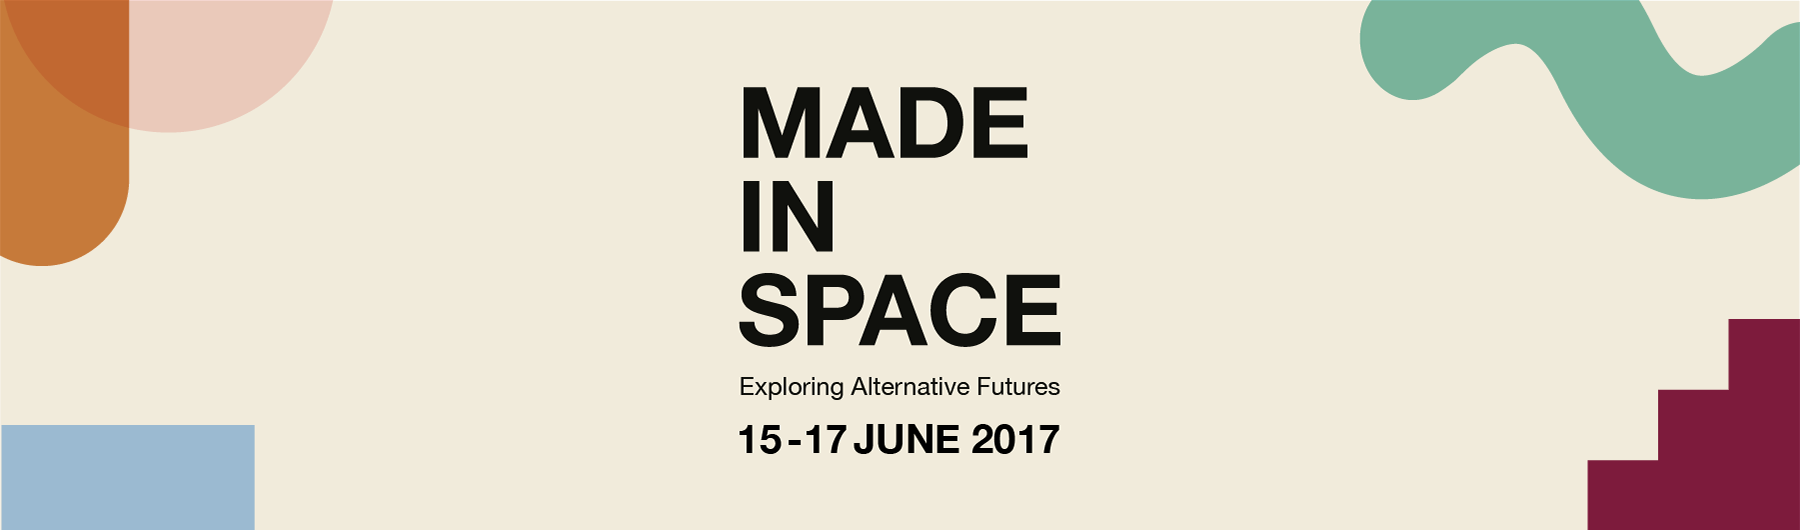 Made in Space 2017